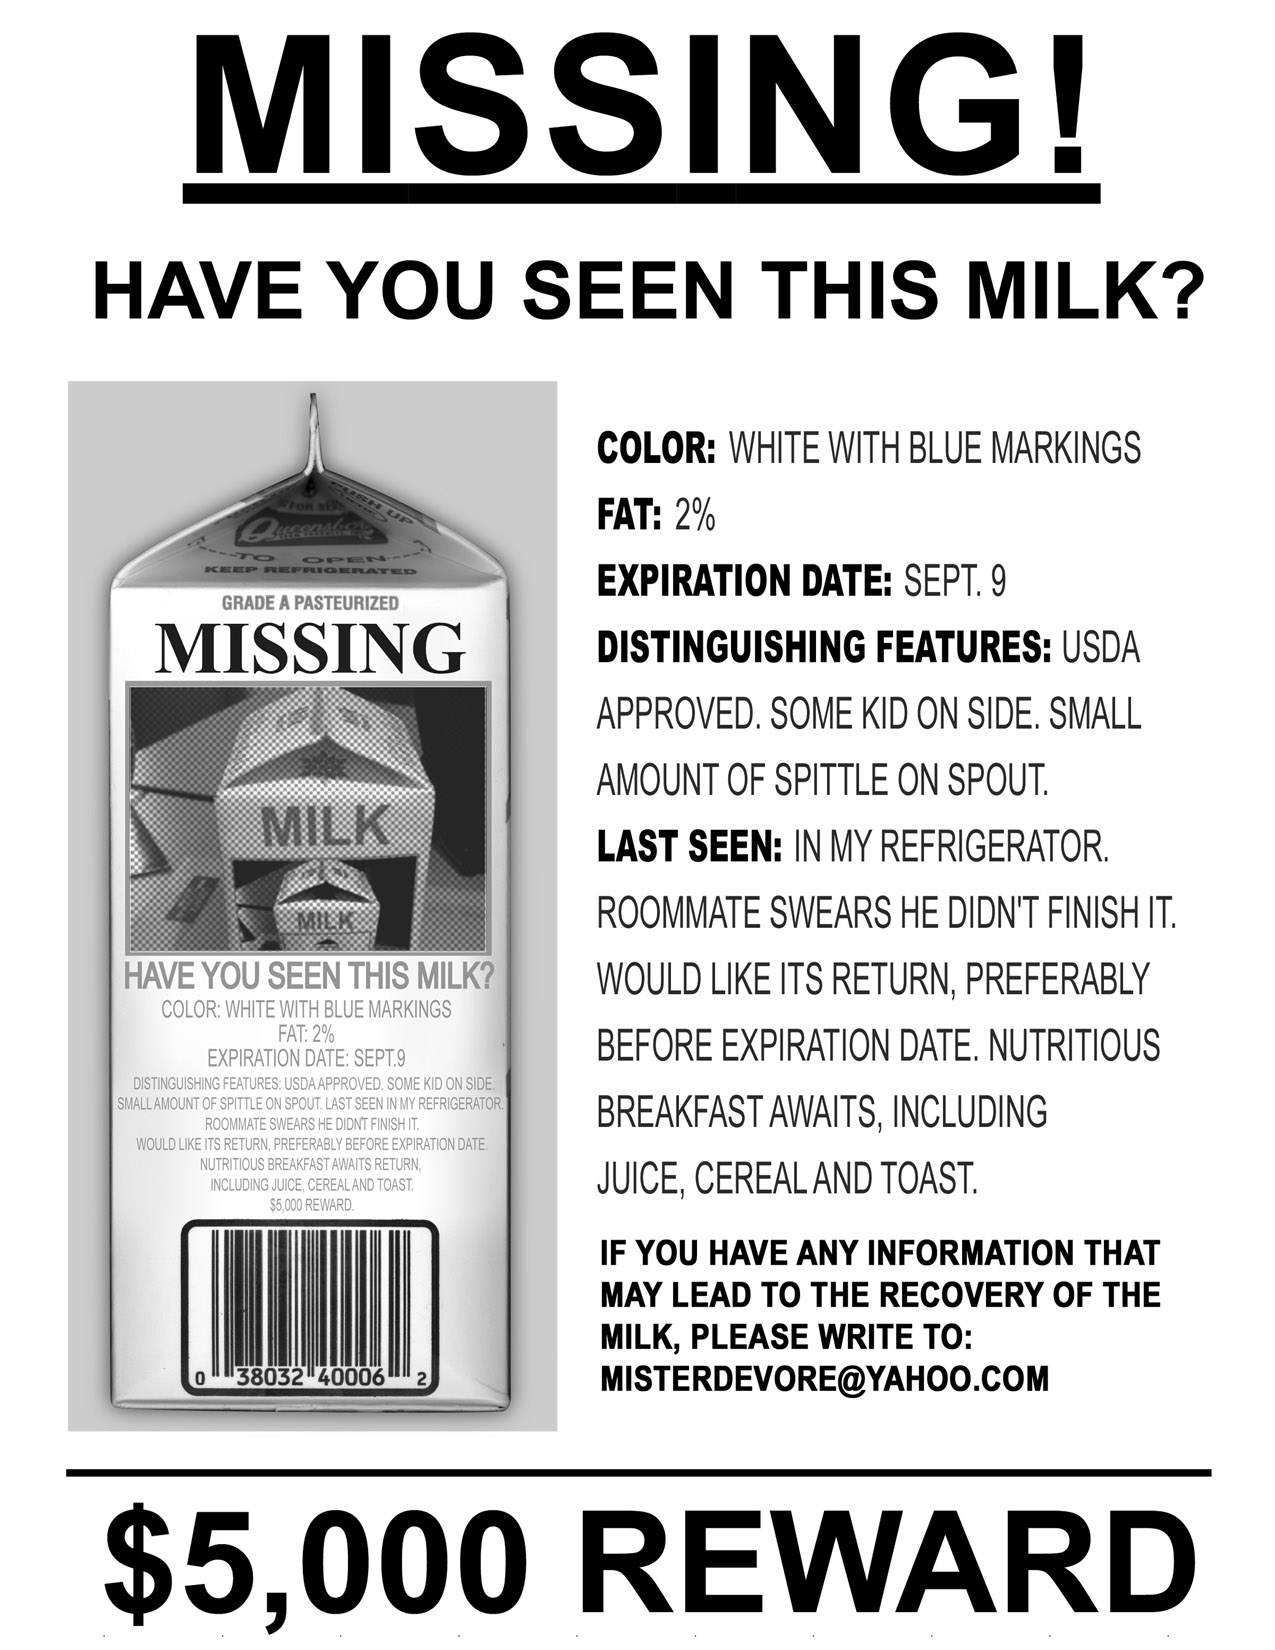 fullmilk - Click To View Image